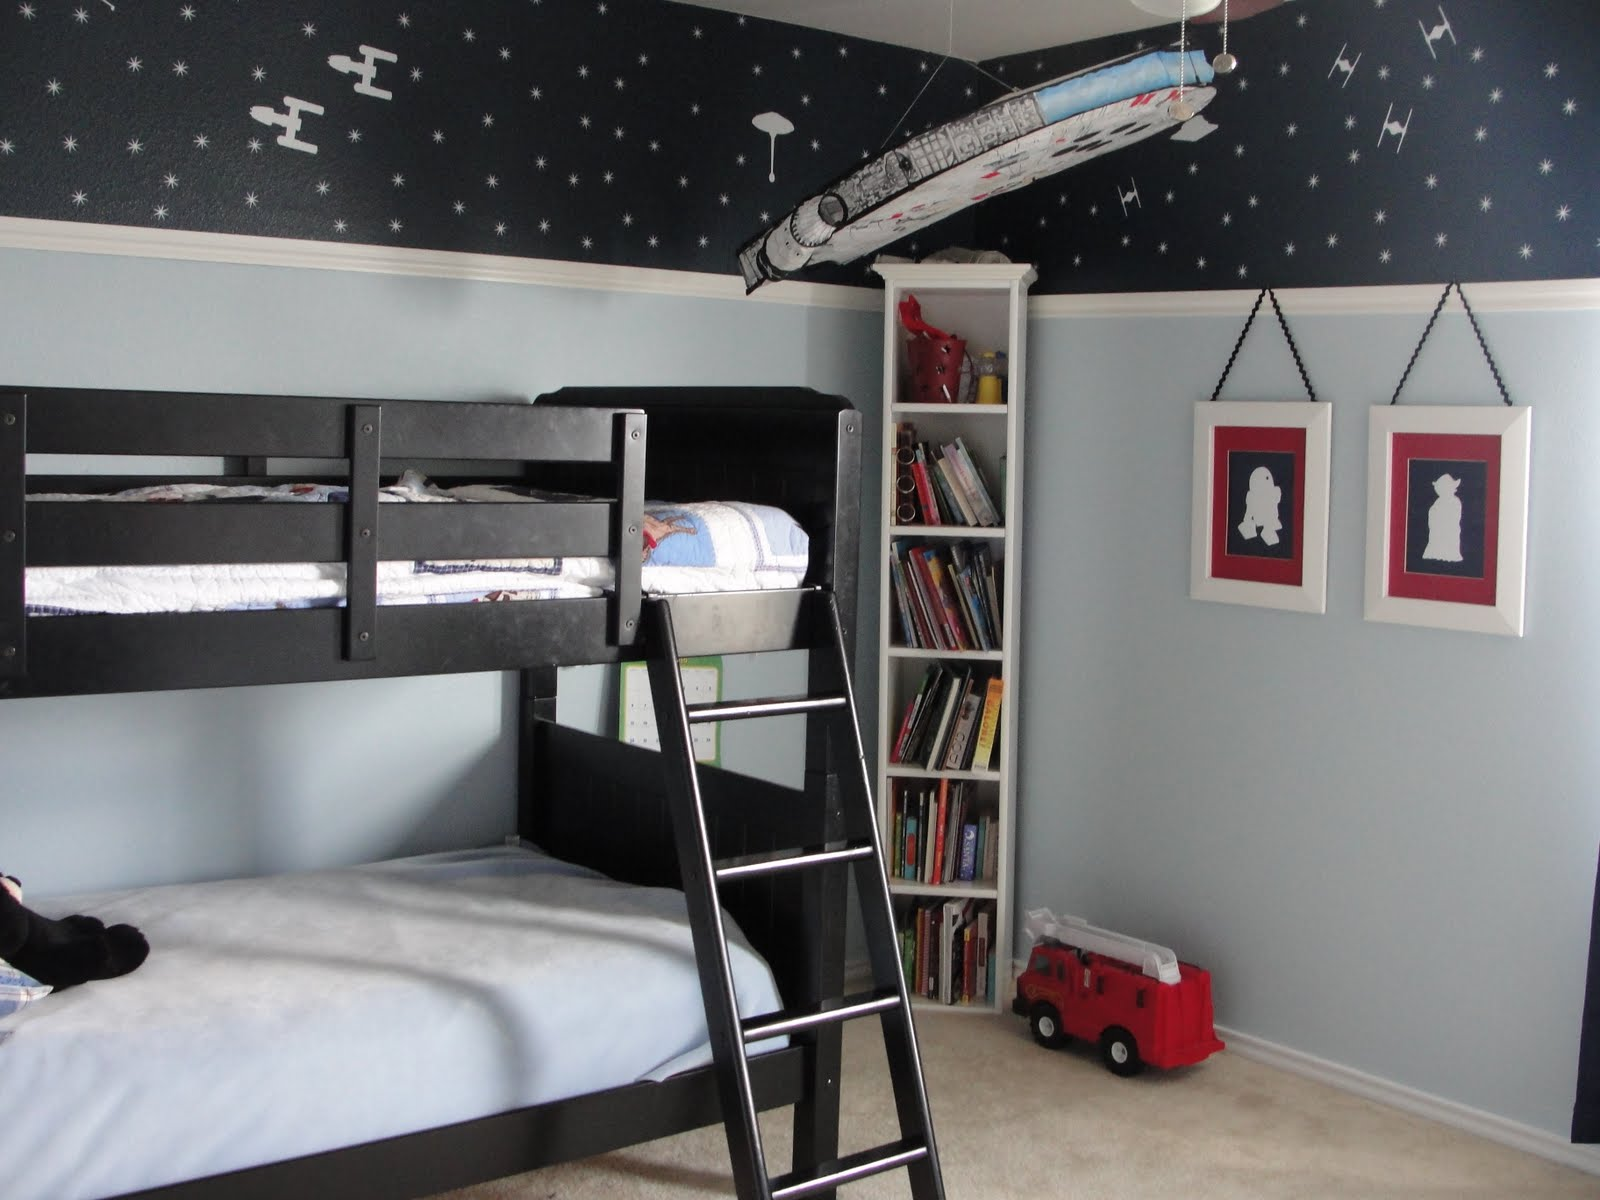 The Boy S Room Star Wars Dream